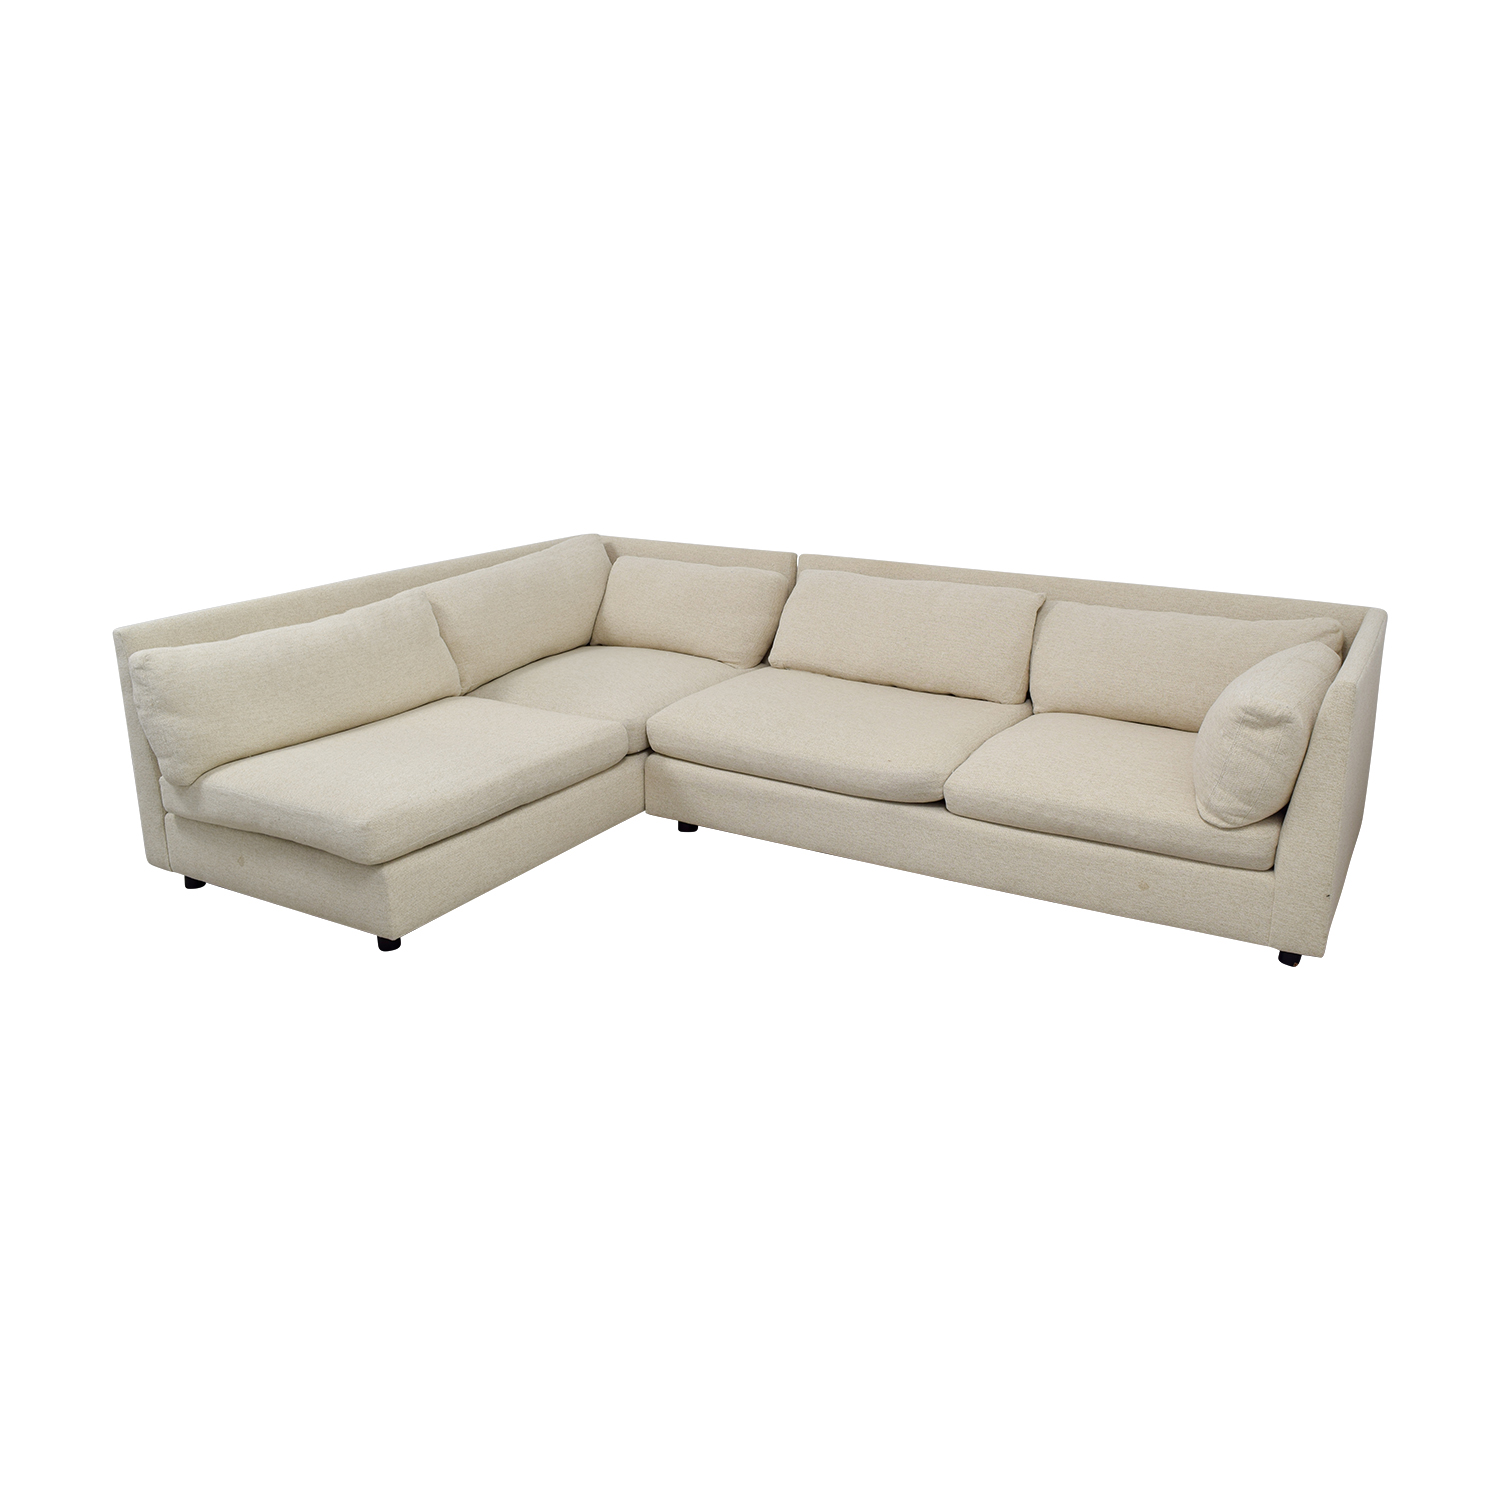 Mitchell Gold + Bob Williams Beige L-Shaped Sectional Mitchell Gold + Bob Williams